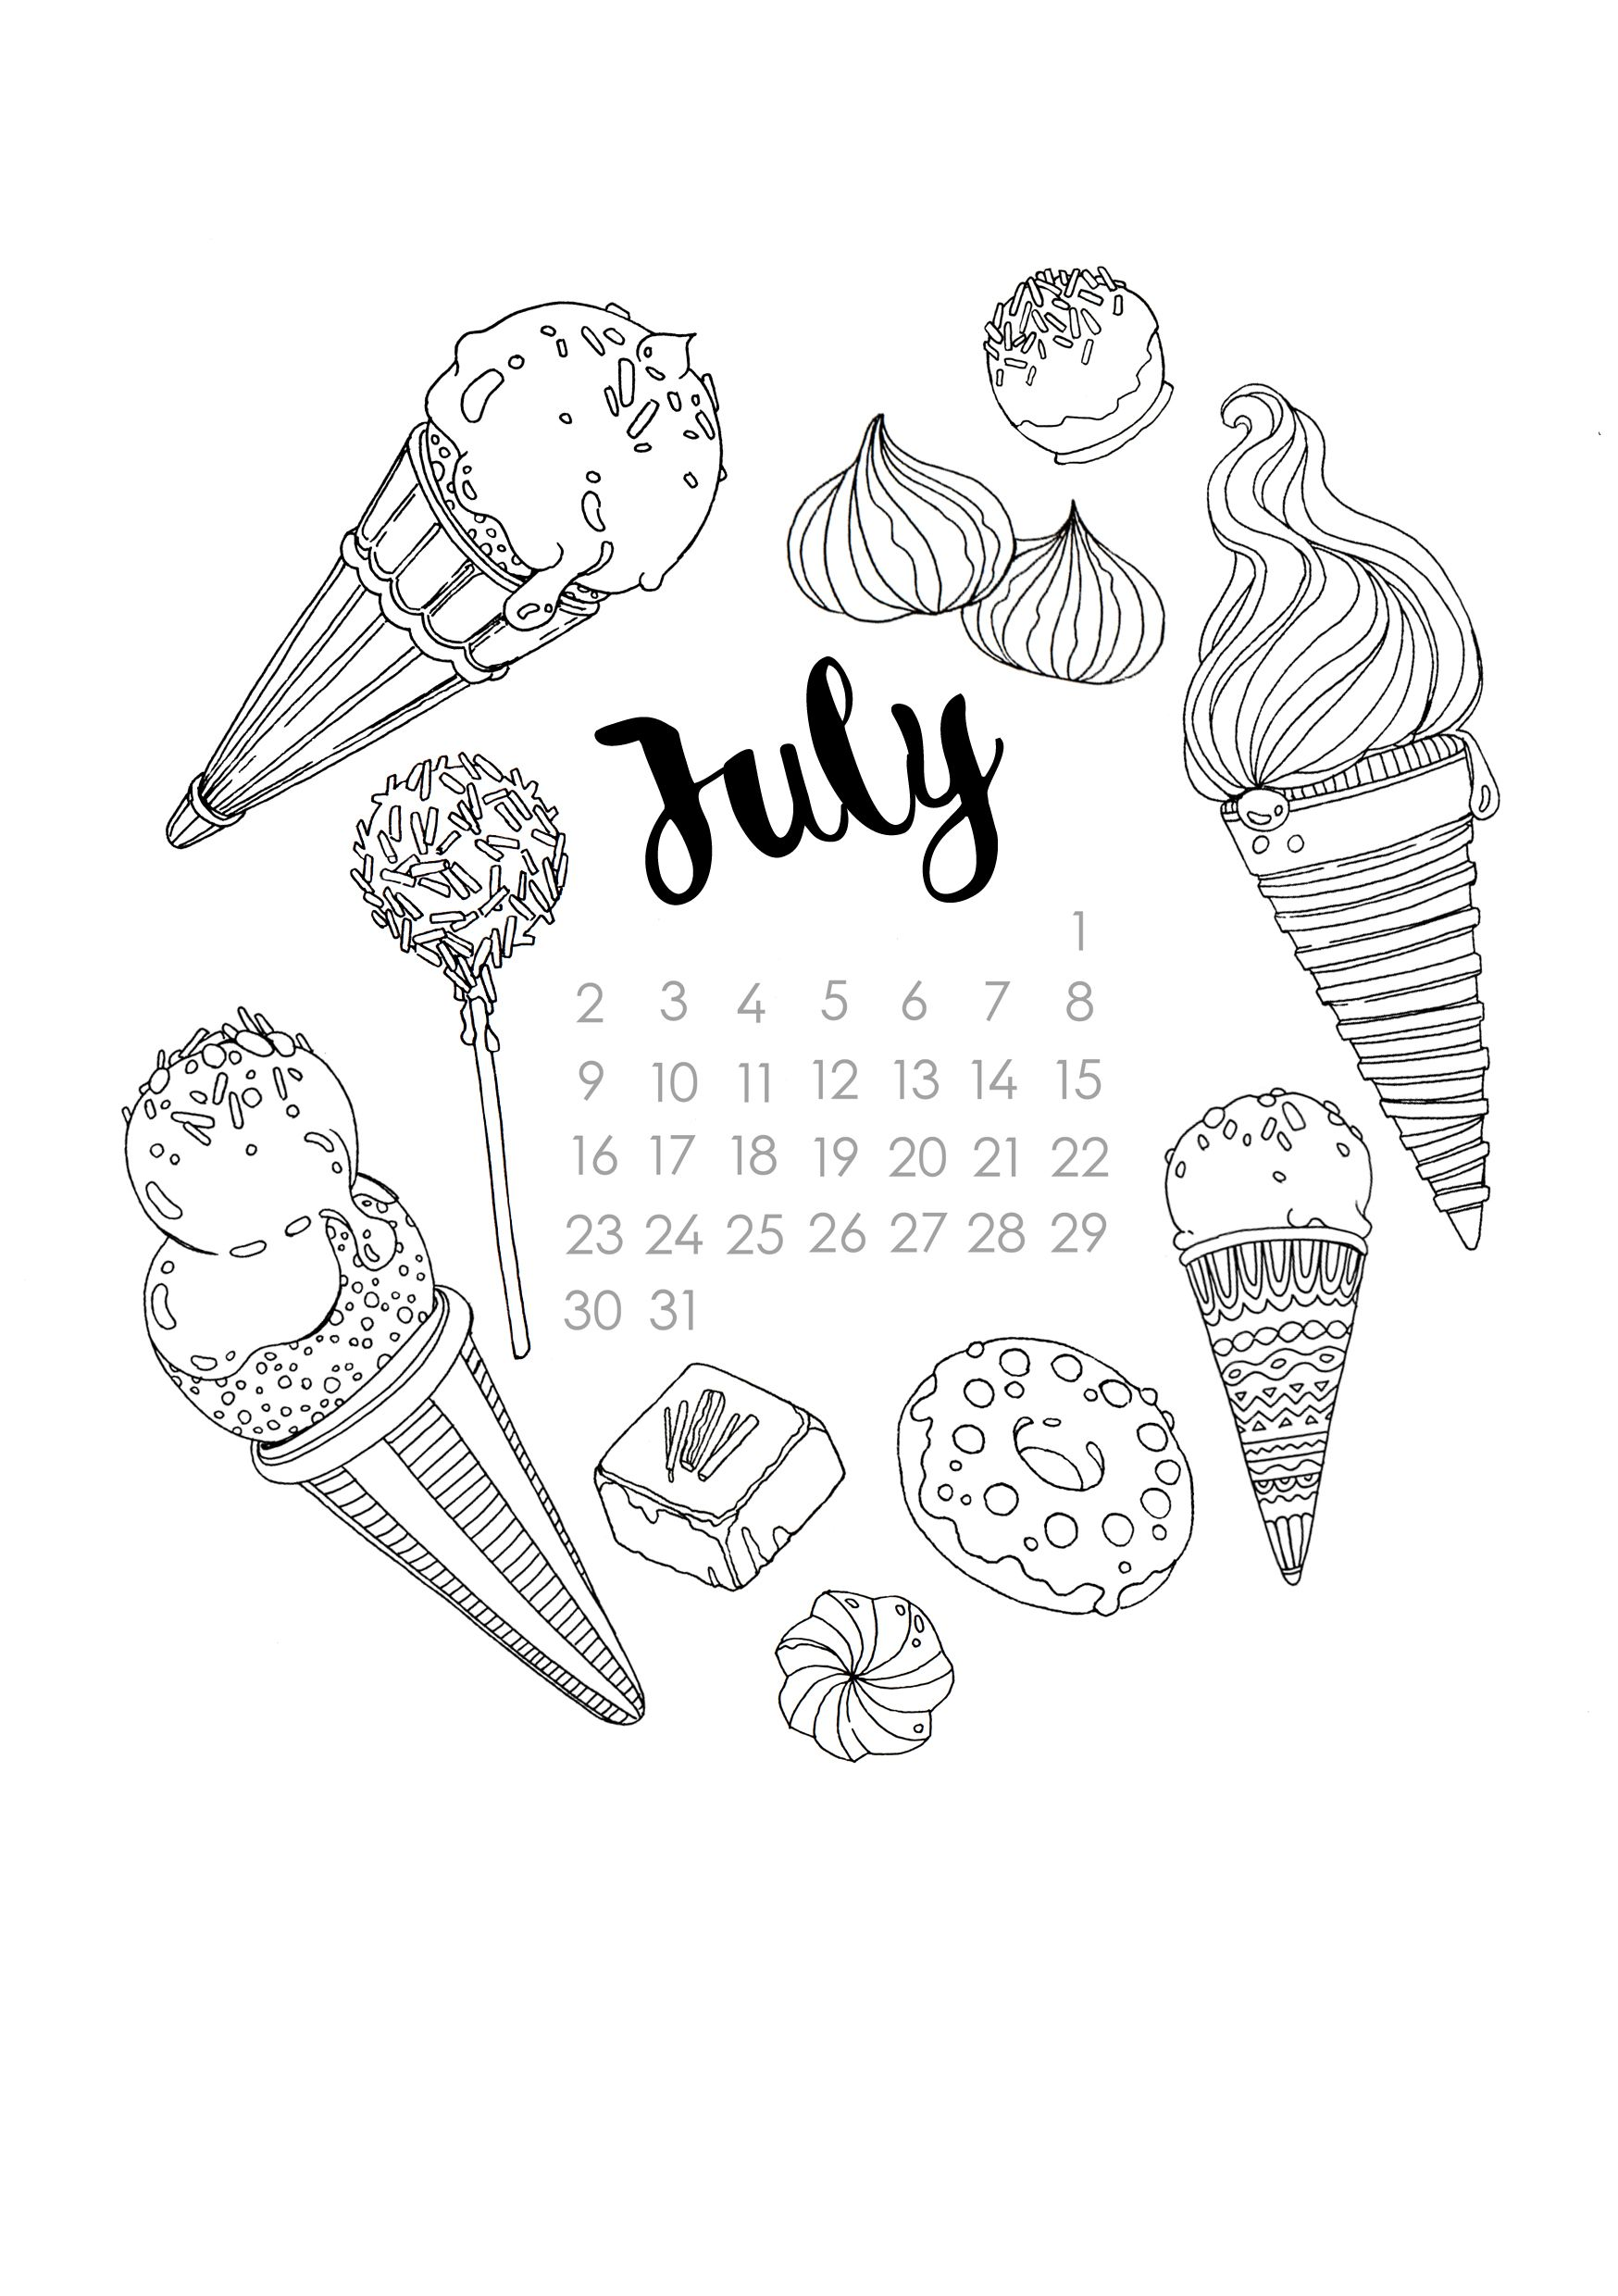 Summery Sweet Coloring Page! With Lots Of Ice Cream Cones